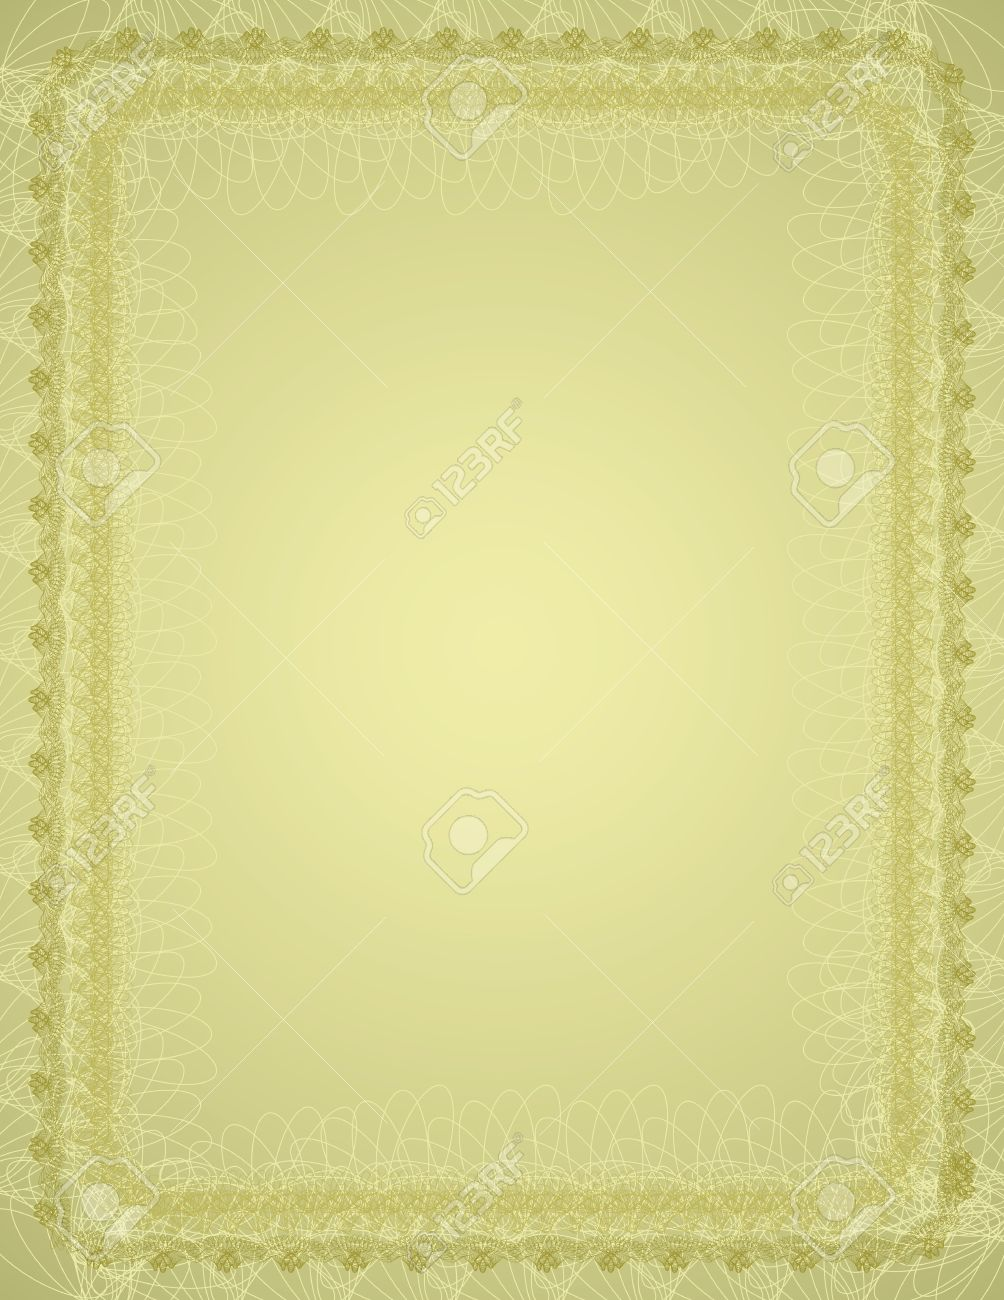 background, blank, border, certificate, charter, decoration, decorative, deed, diploma, document, frame, illustration, letter-certificatory, old, ornament, paper, vector, vignette , abstract,  celebration, color,  composition, beautiful,  curve,  graphic,   drawing, design,  paint, picture, retro,  shape,  clipart, holiday, stylization, classical, ancient, antique Stock Vector - 1463273